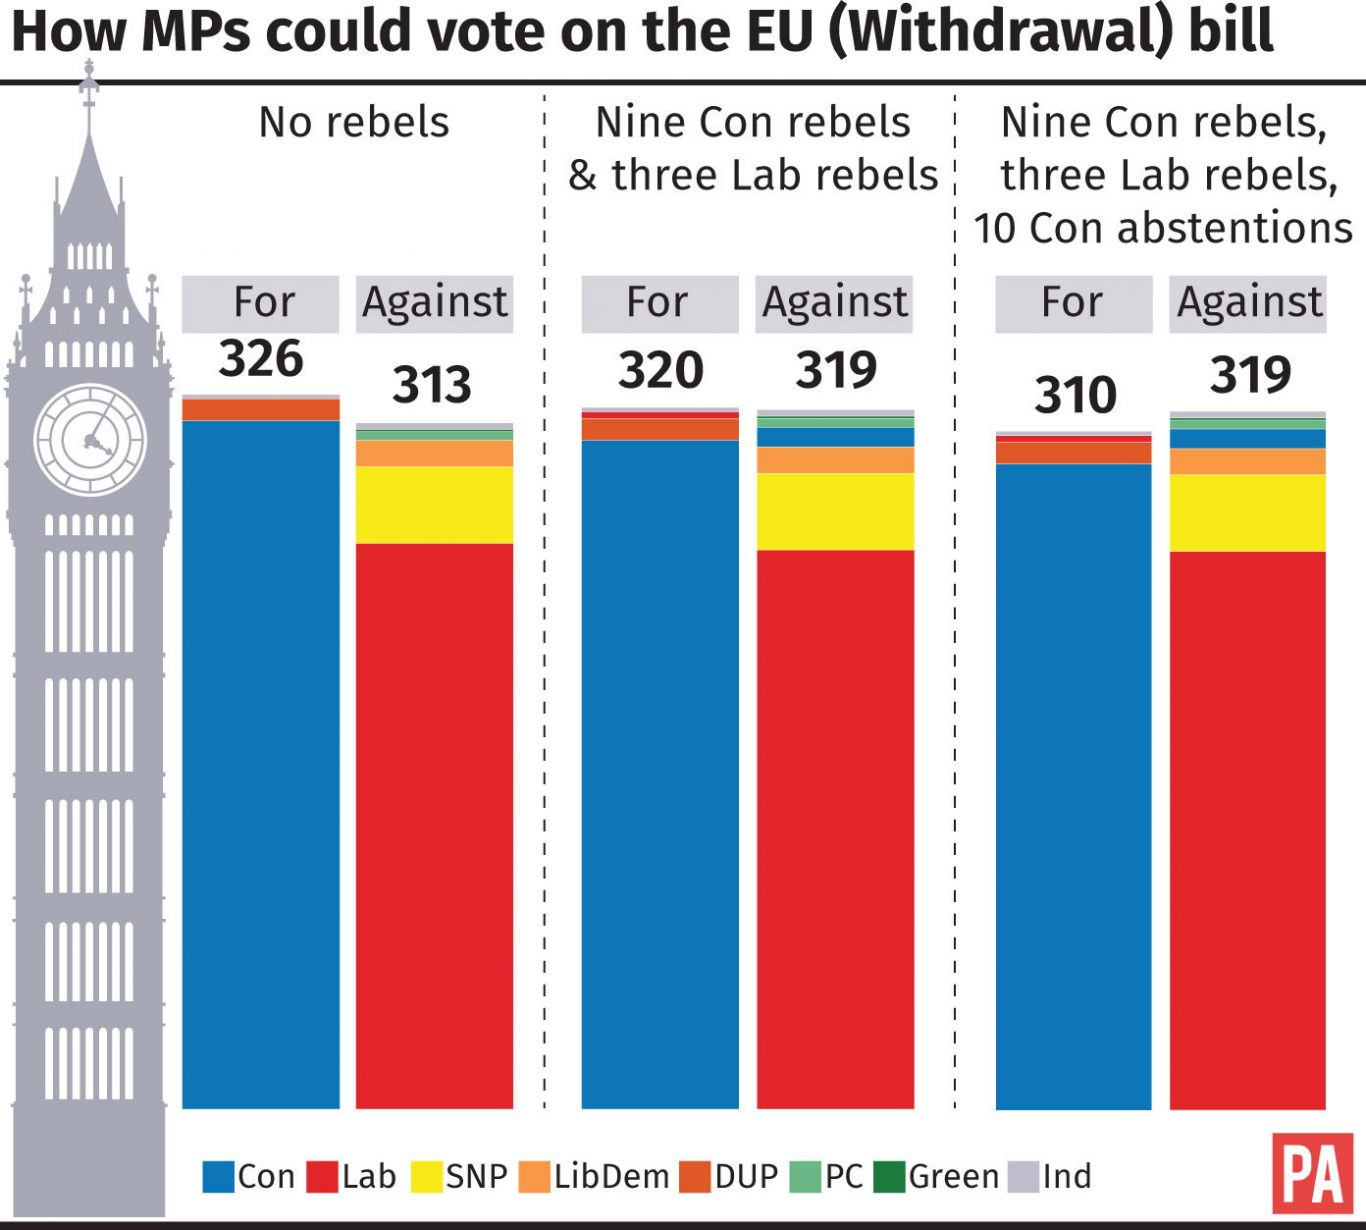 How MPs could vote on the EU (withdrawal) bill